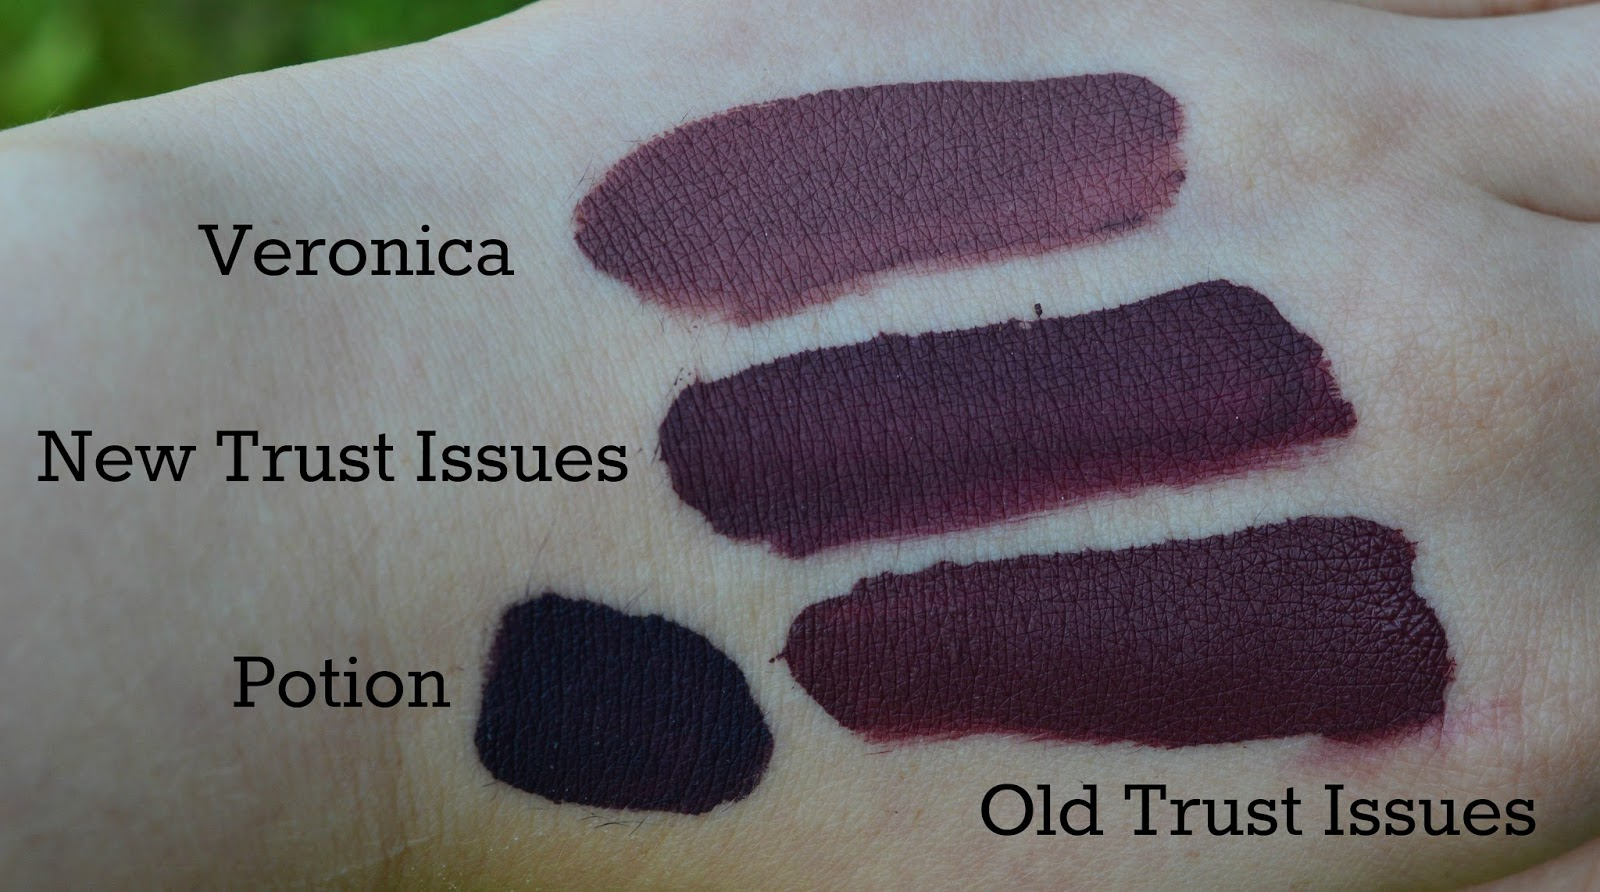 Veronica vs. old trust issues vs. new trust issues